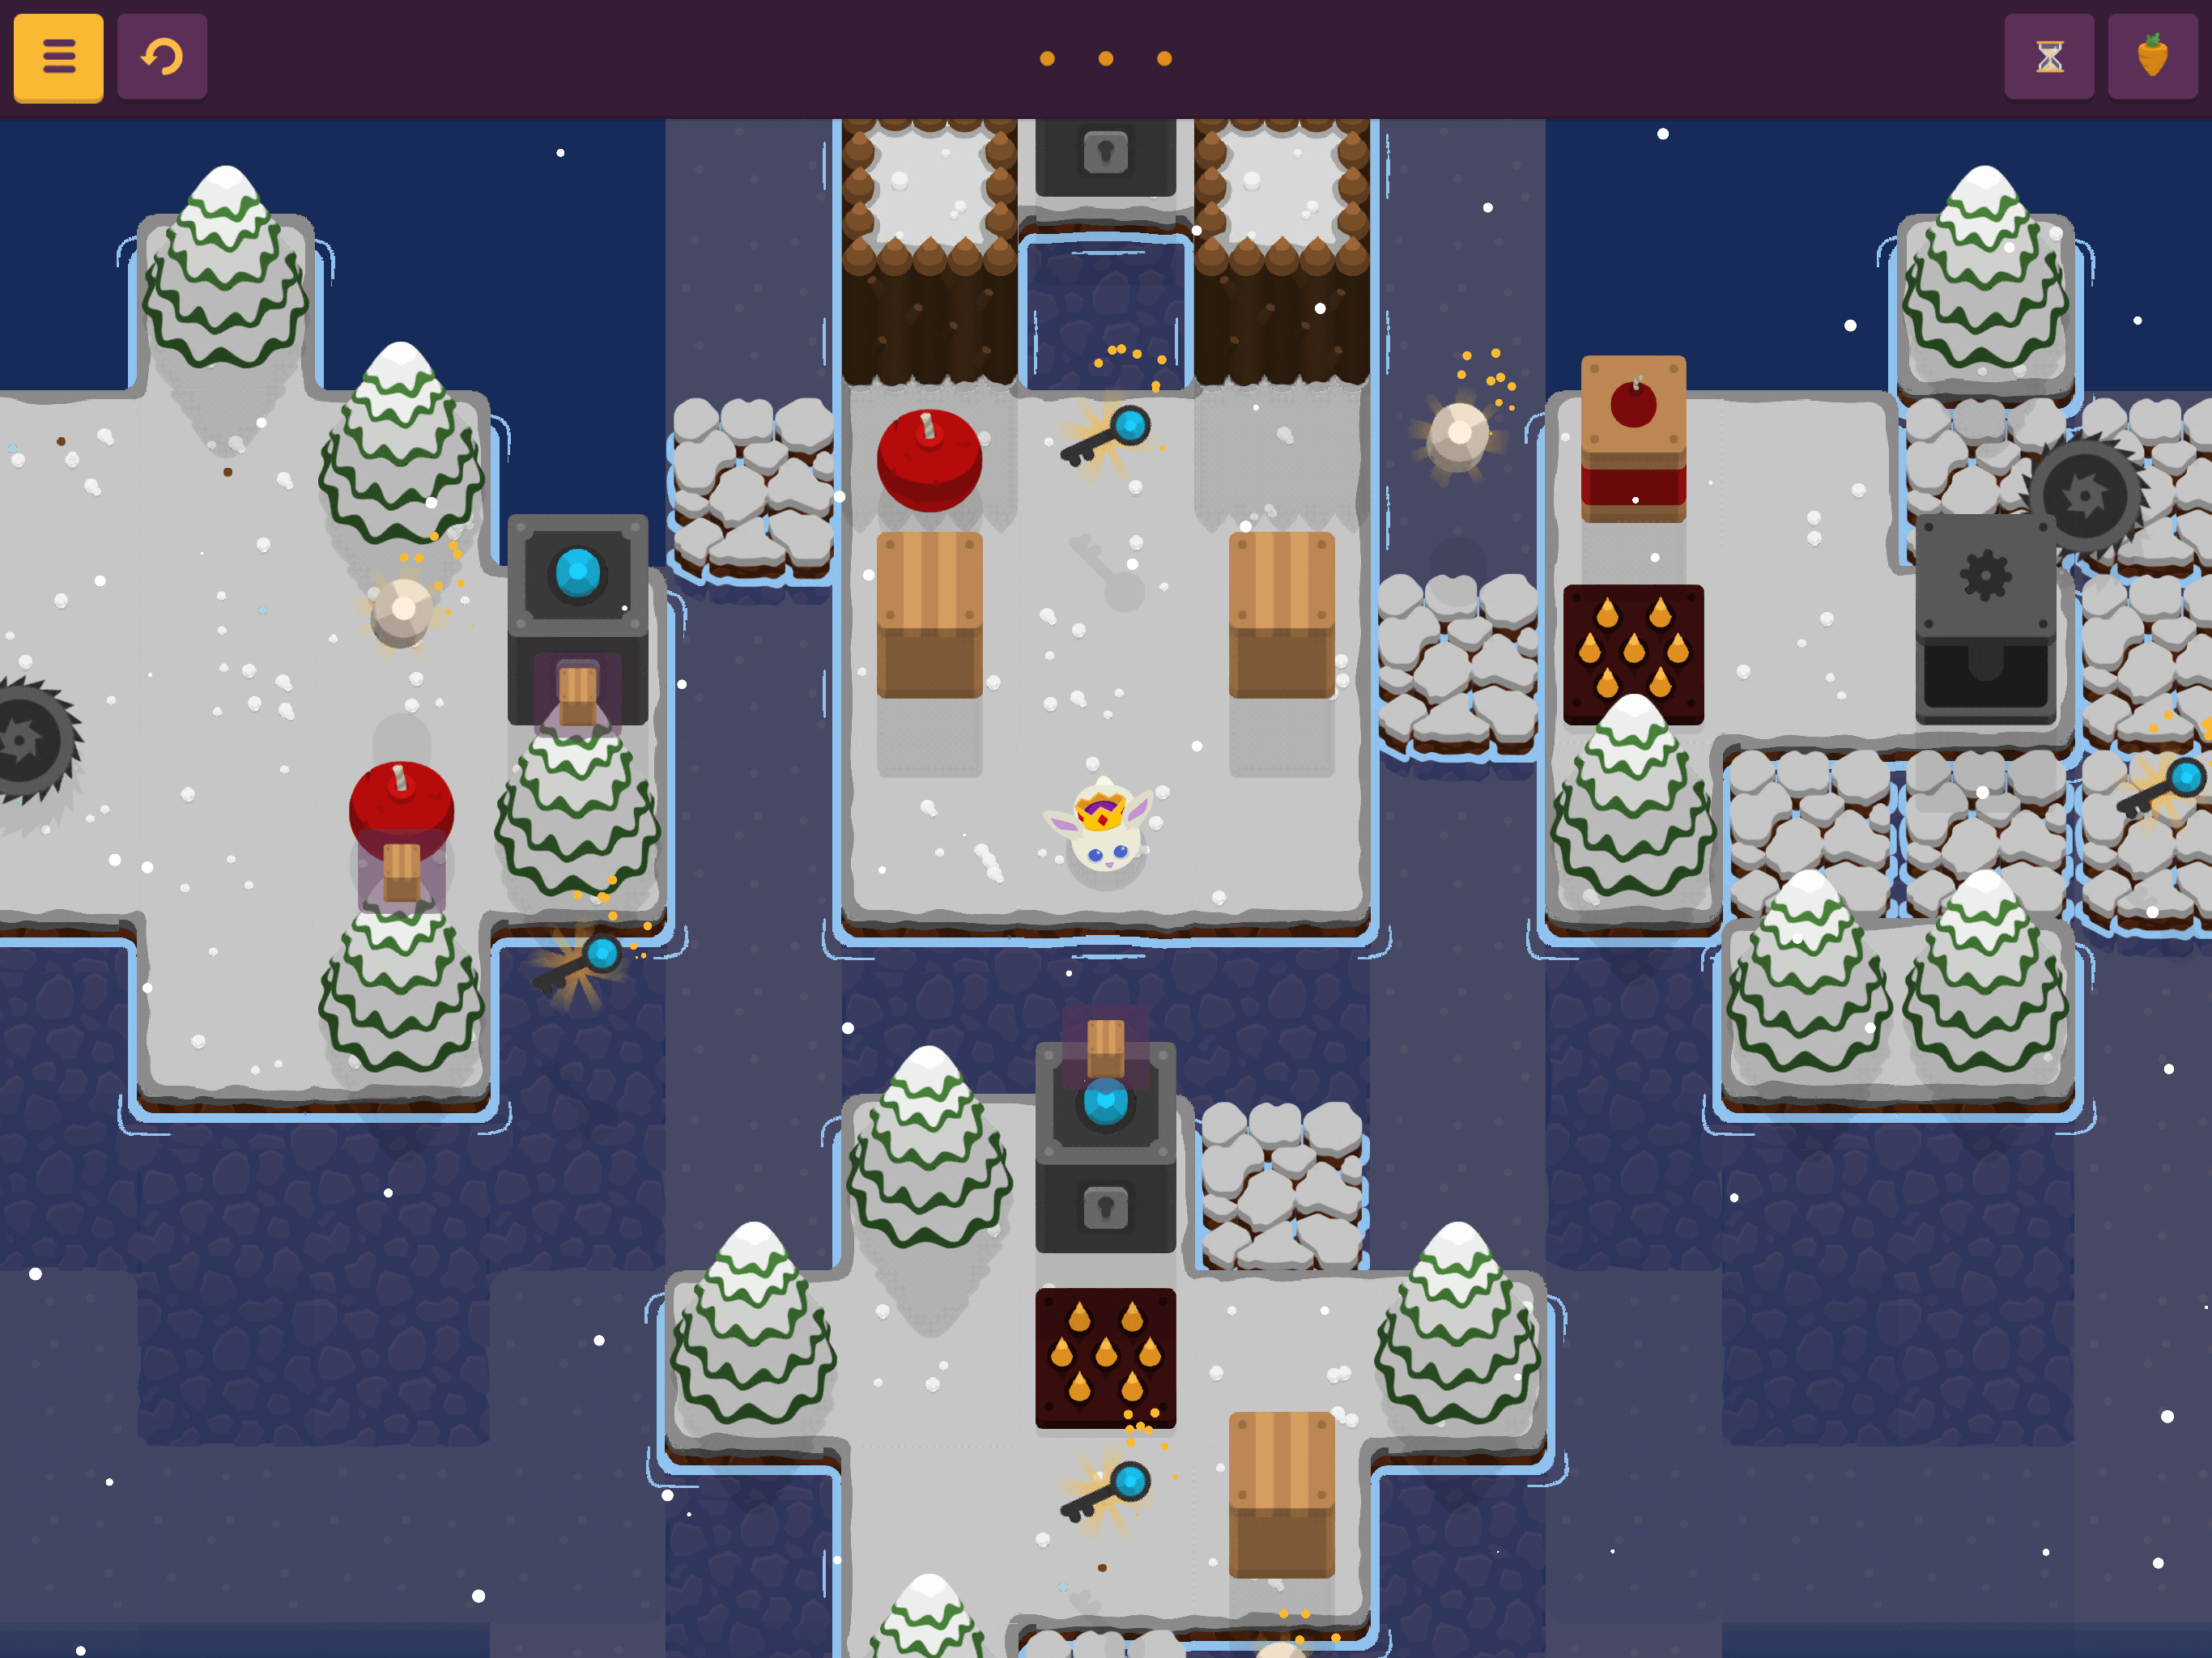 A screenshot of King Rabbit taken from someone playing the game on an iPad Pro